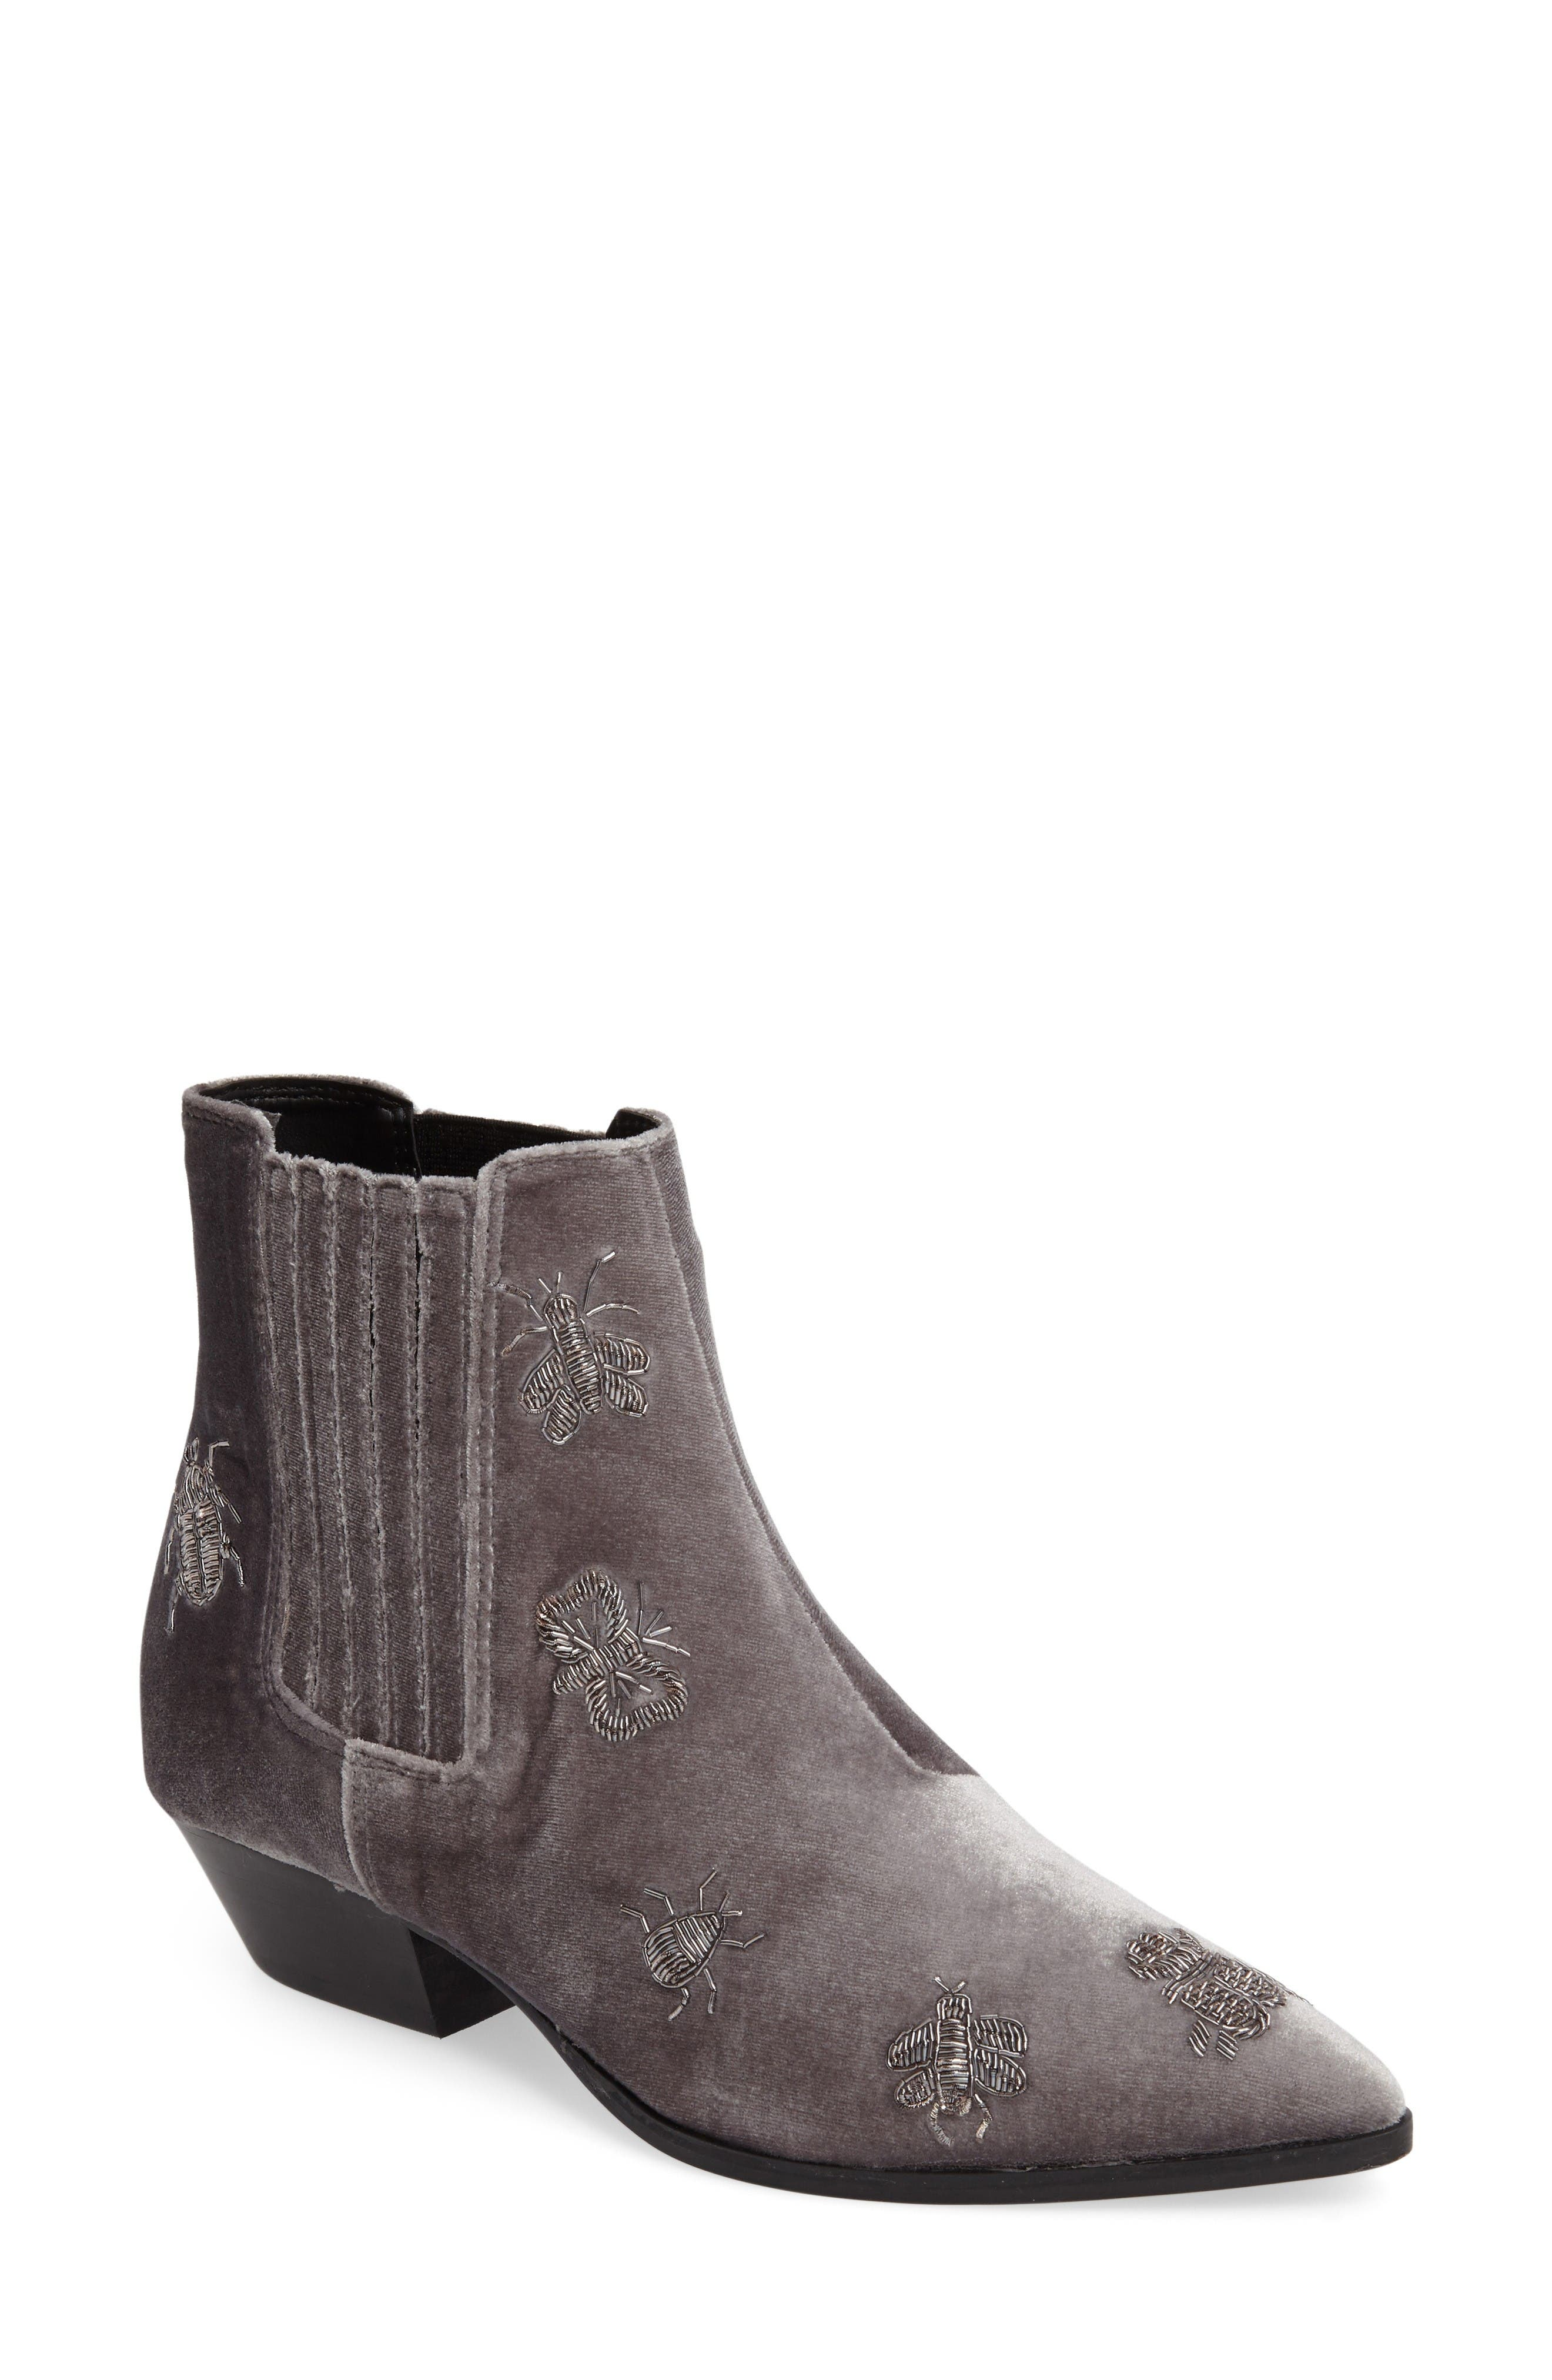 Alternate Image 1 Selected - Topshop Ants Ankle Boot (Women)